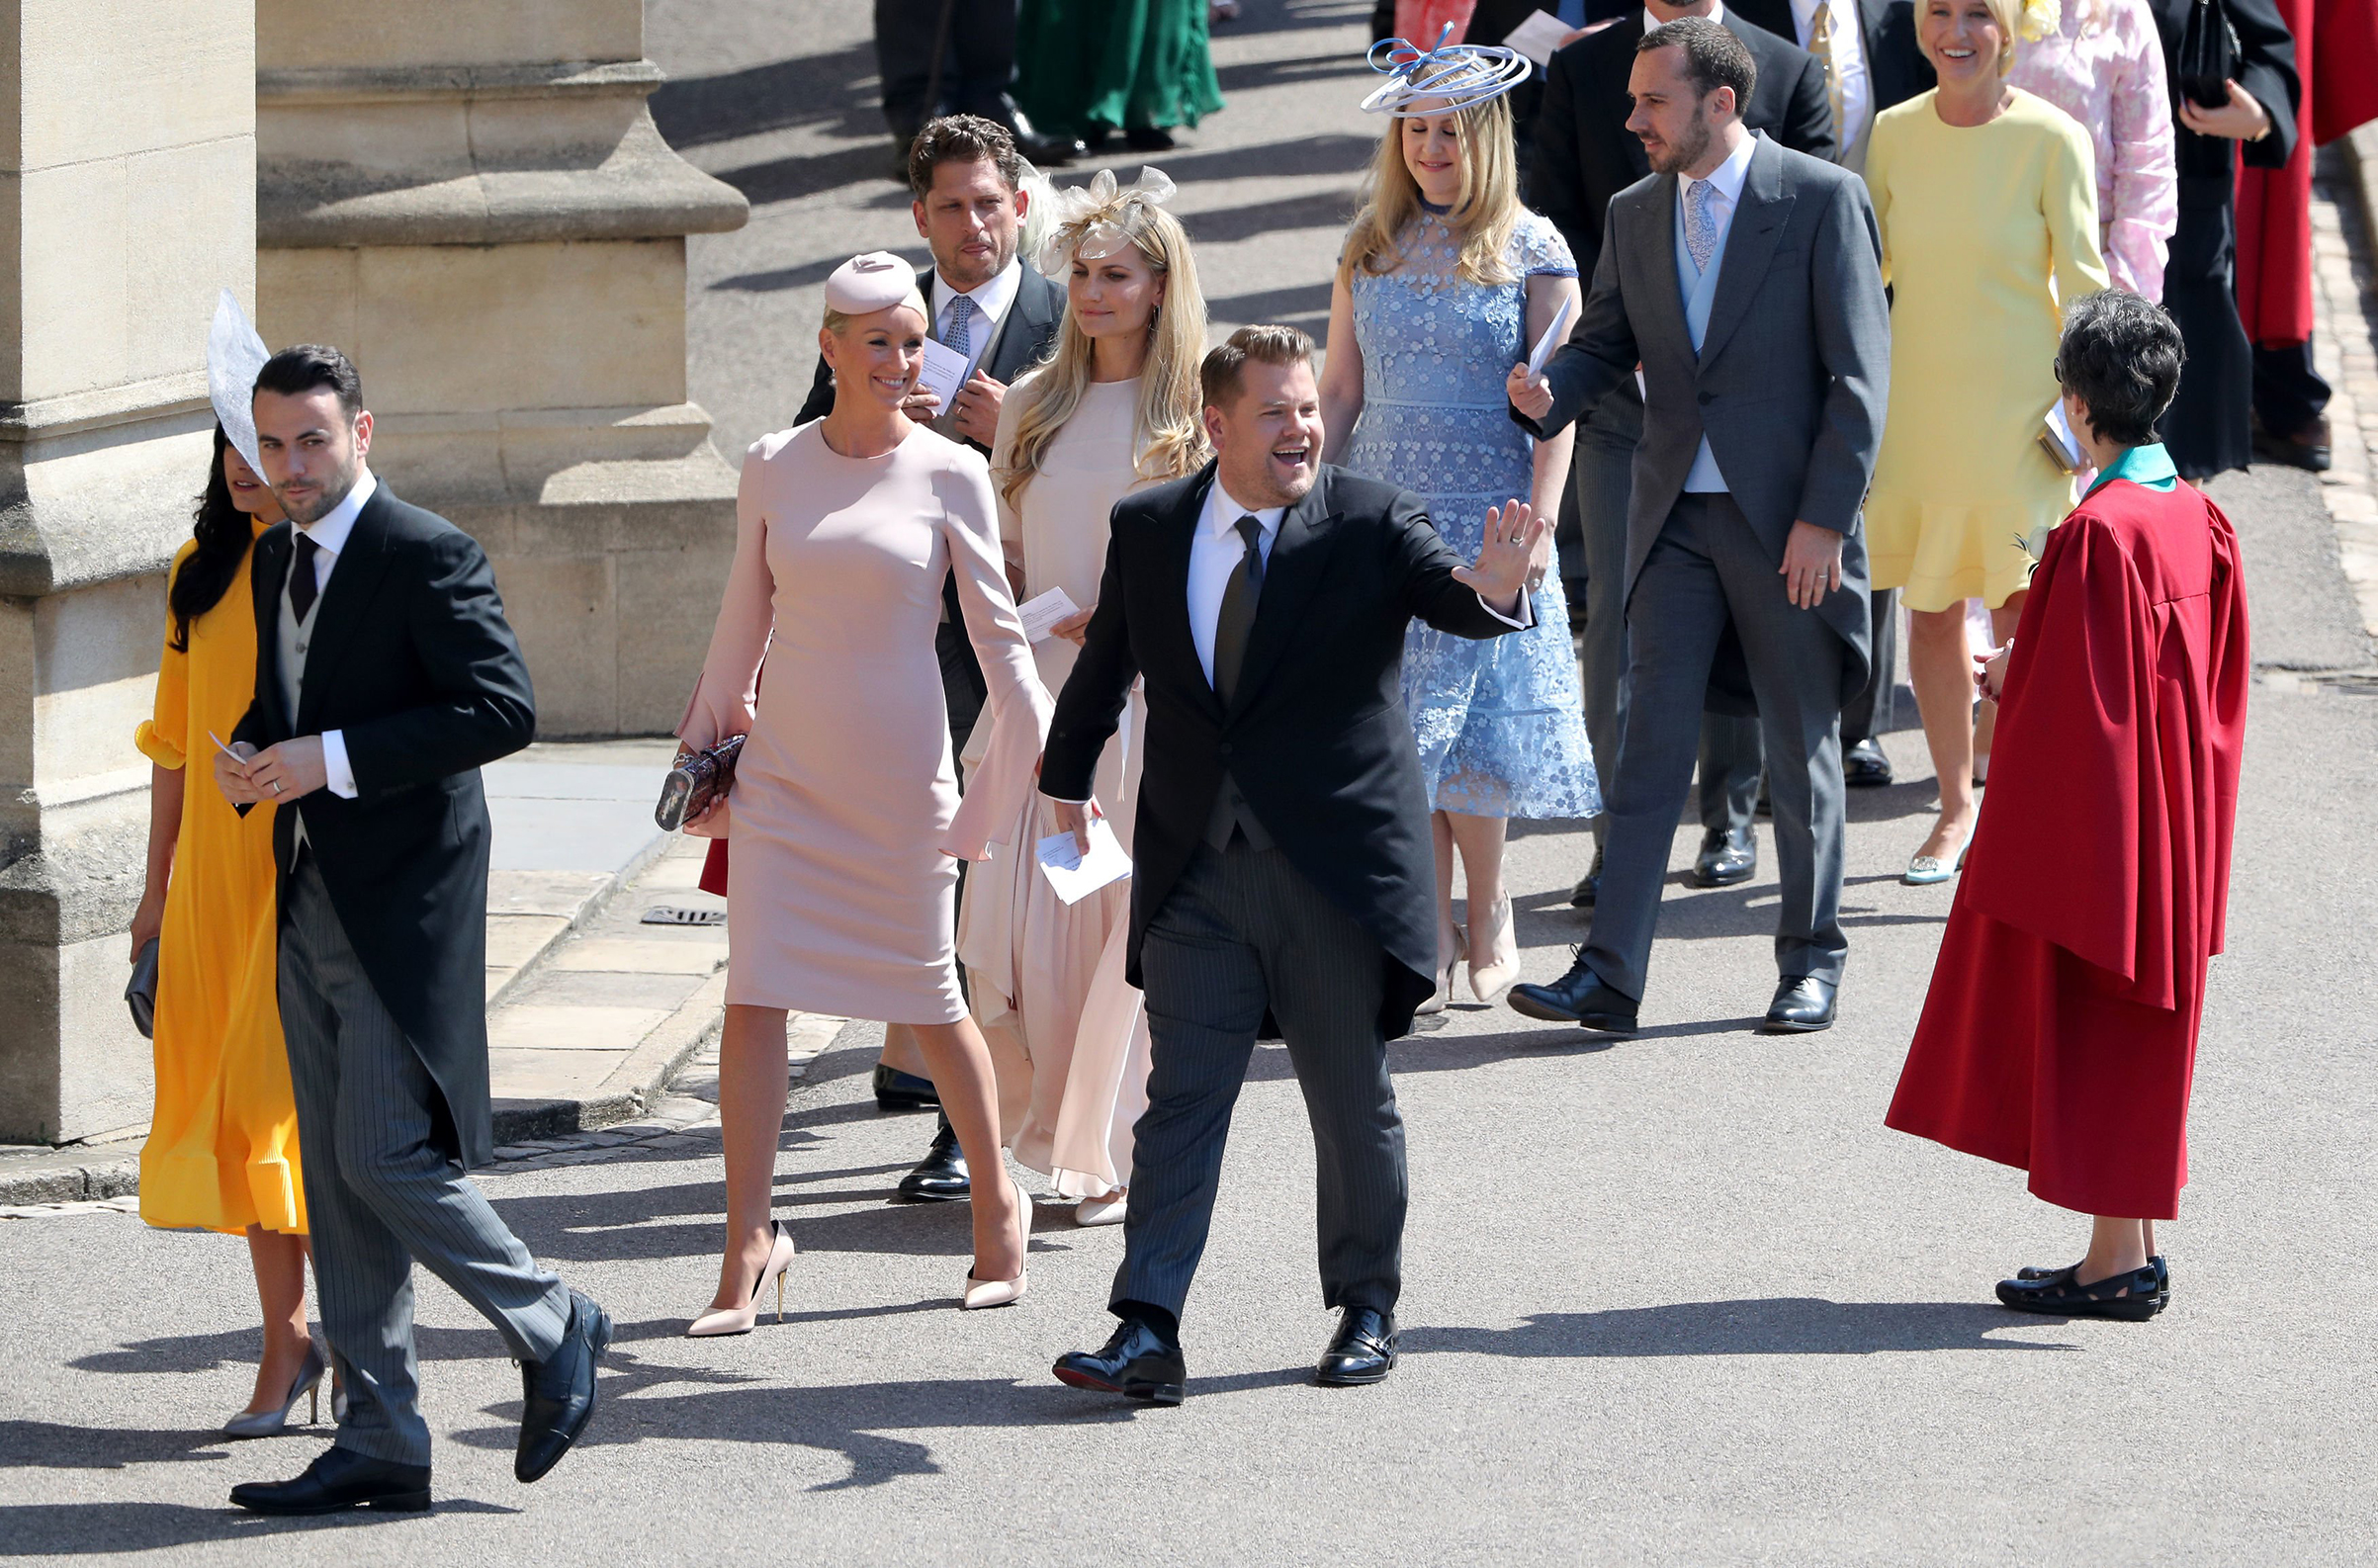 James Corden and Julia Carey arrive for the wedding ceremony of Britain's Prince Harry, Duke of Sussex and Meghan Markle at St George's Chapel, Windsor Castle, in Windsor, on May 19, 2018.